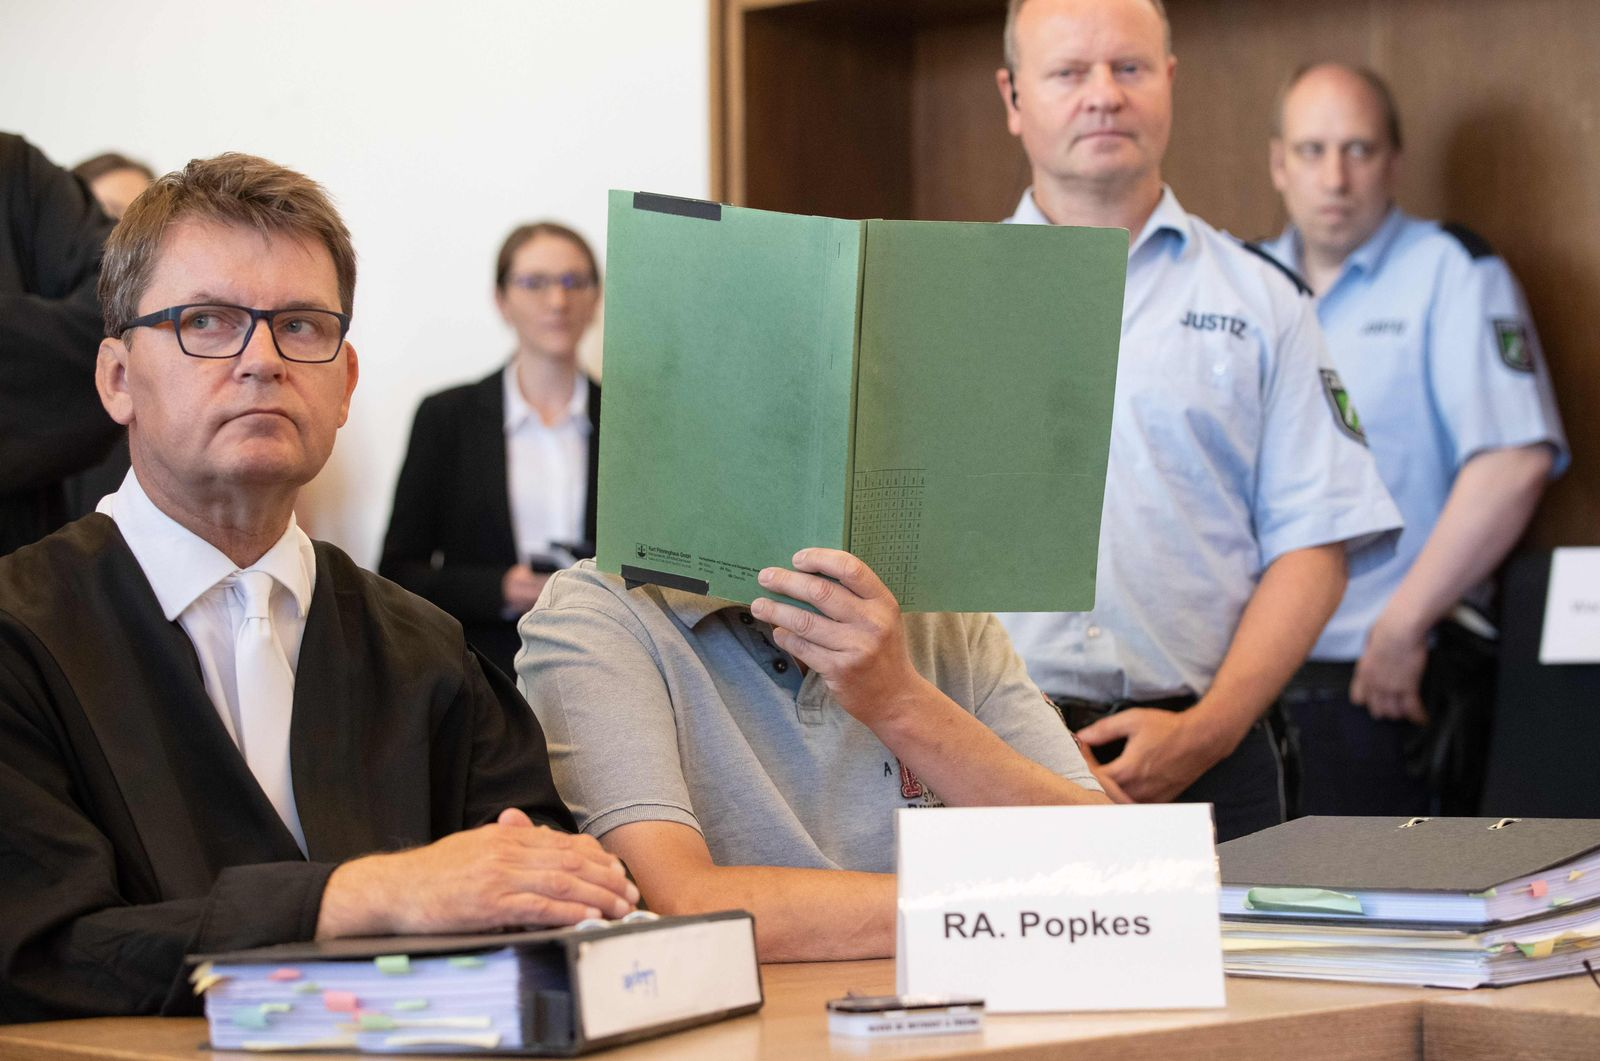 GERMANY-JUSTICE-TRIAL-ABUSE-CHILDREN